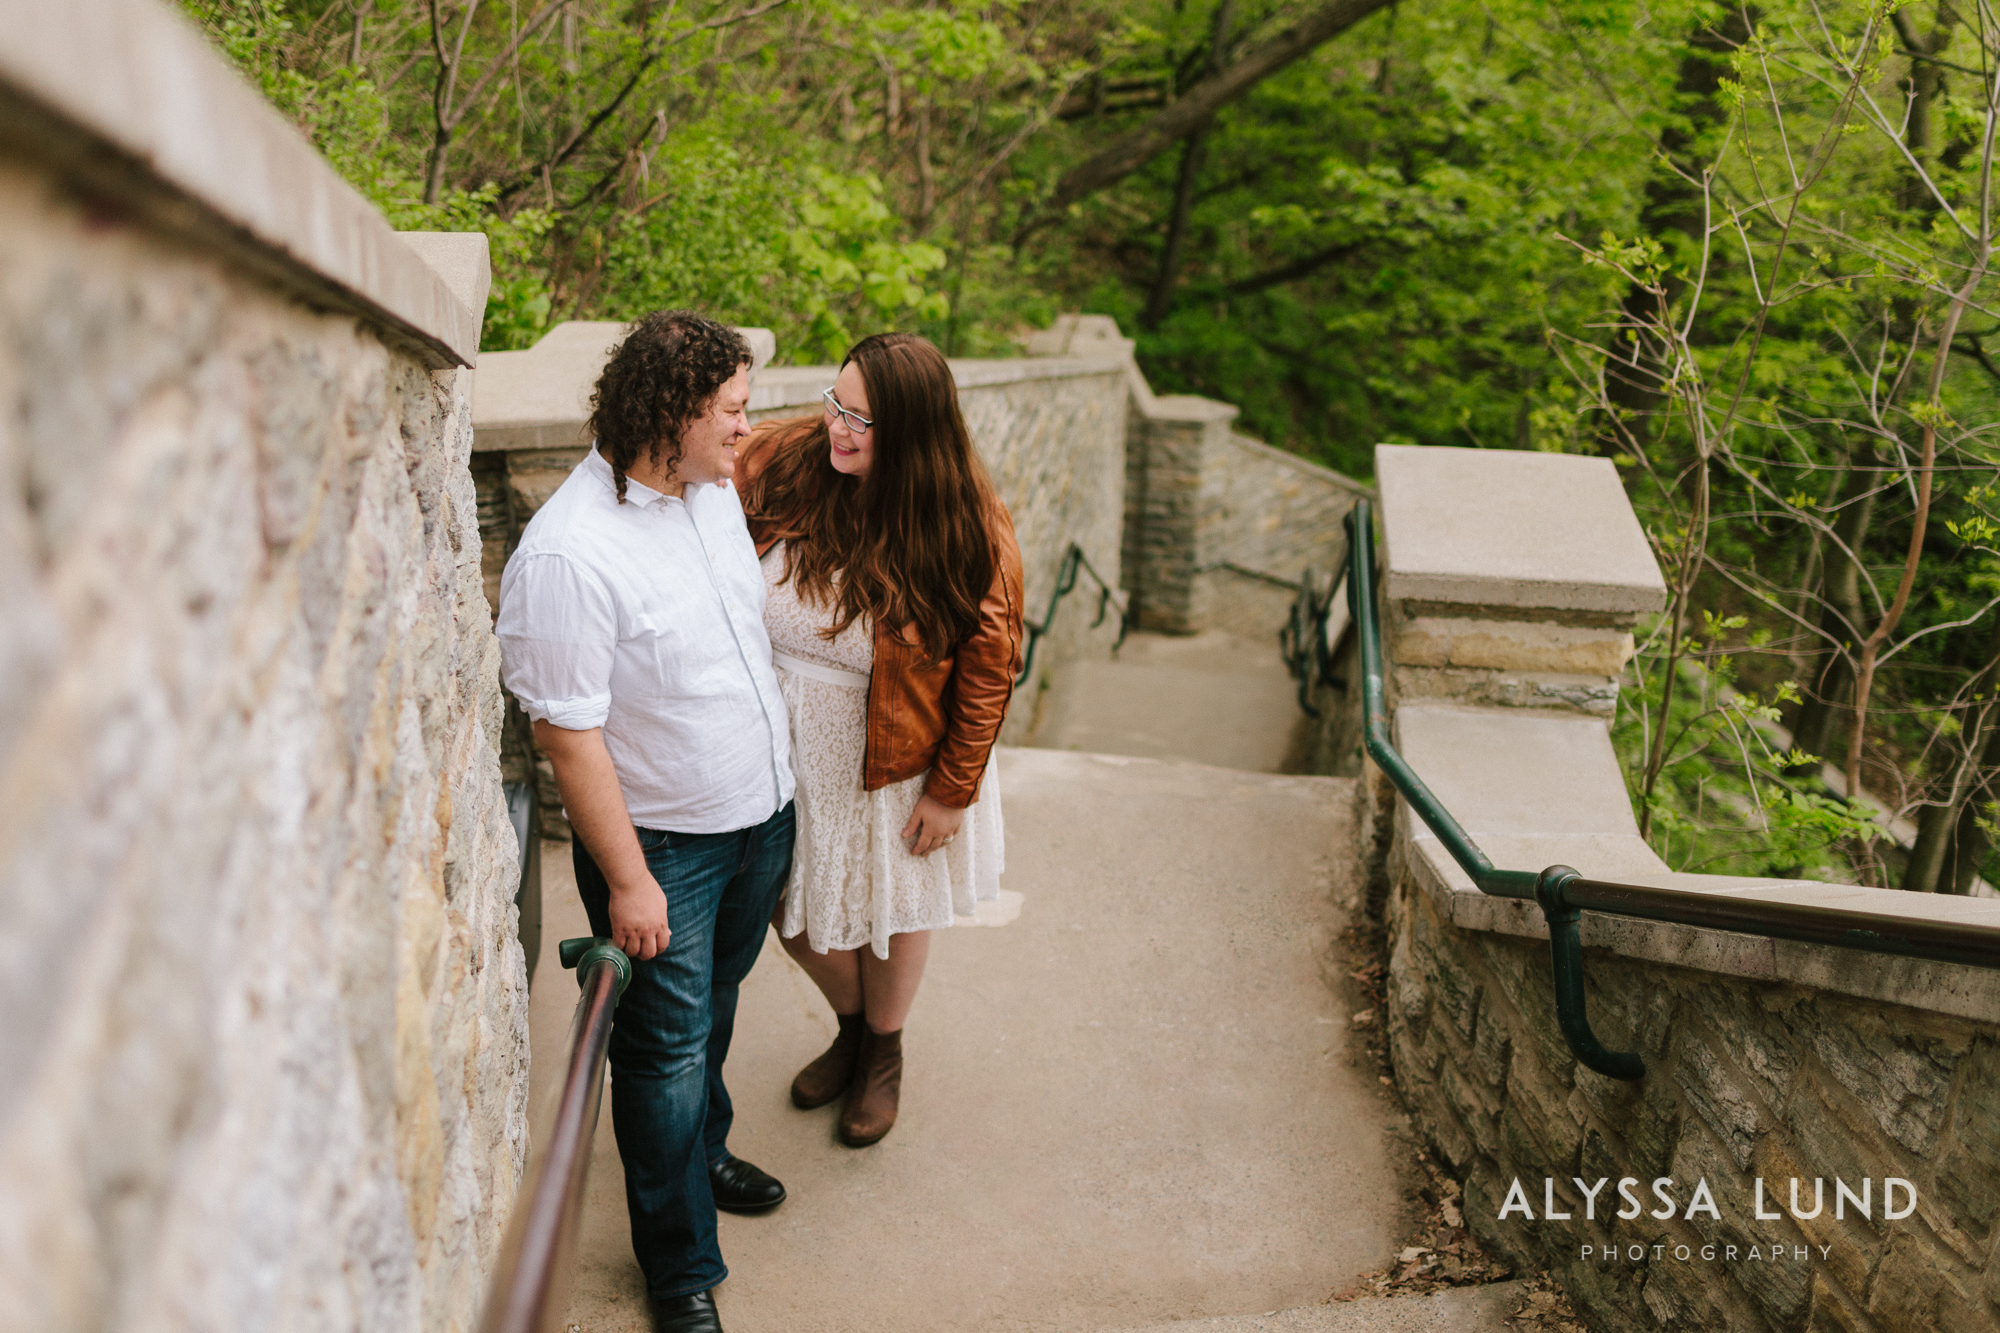 Creative-Minneapolis-engagement-photography-by-Alyssa-Lund-Photography.jpg